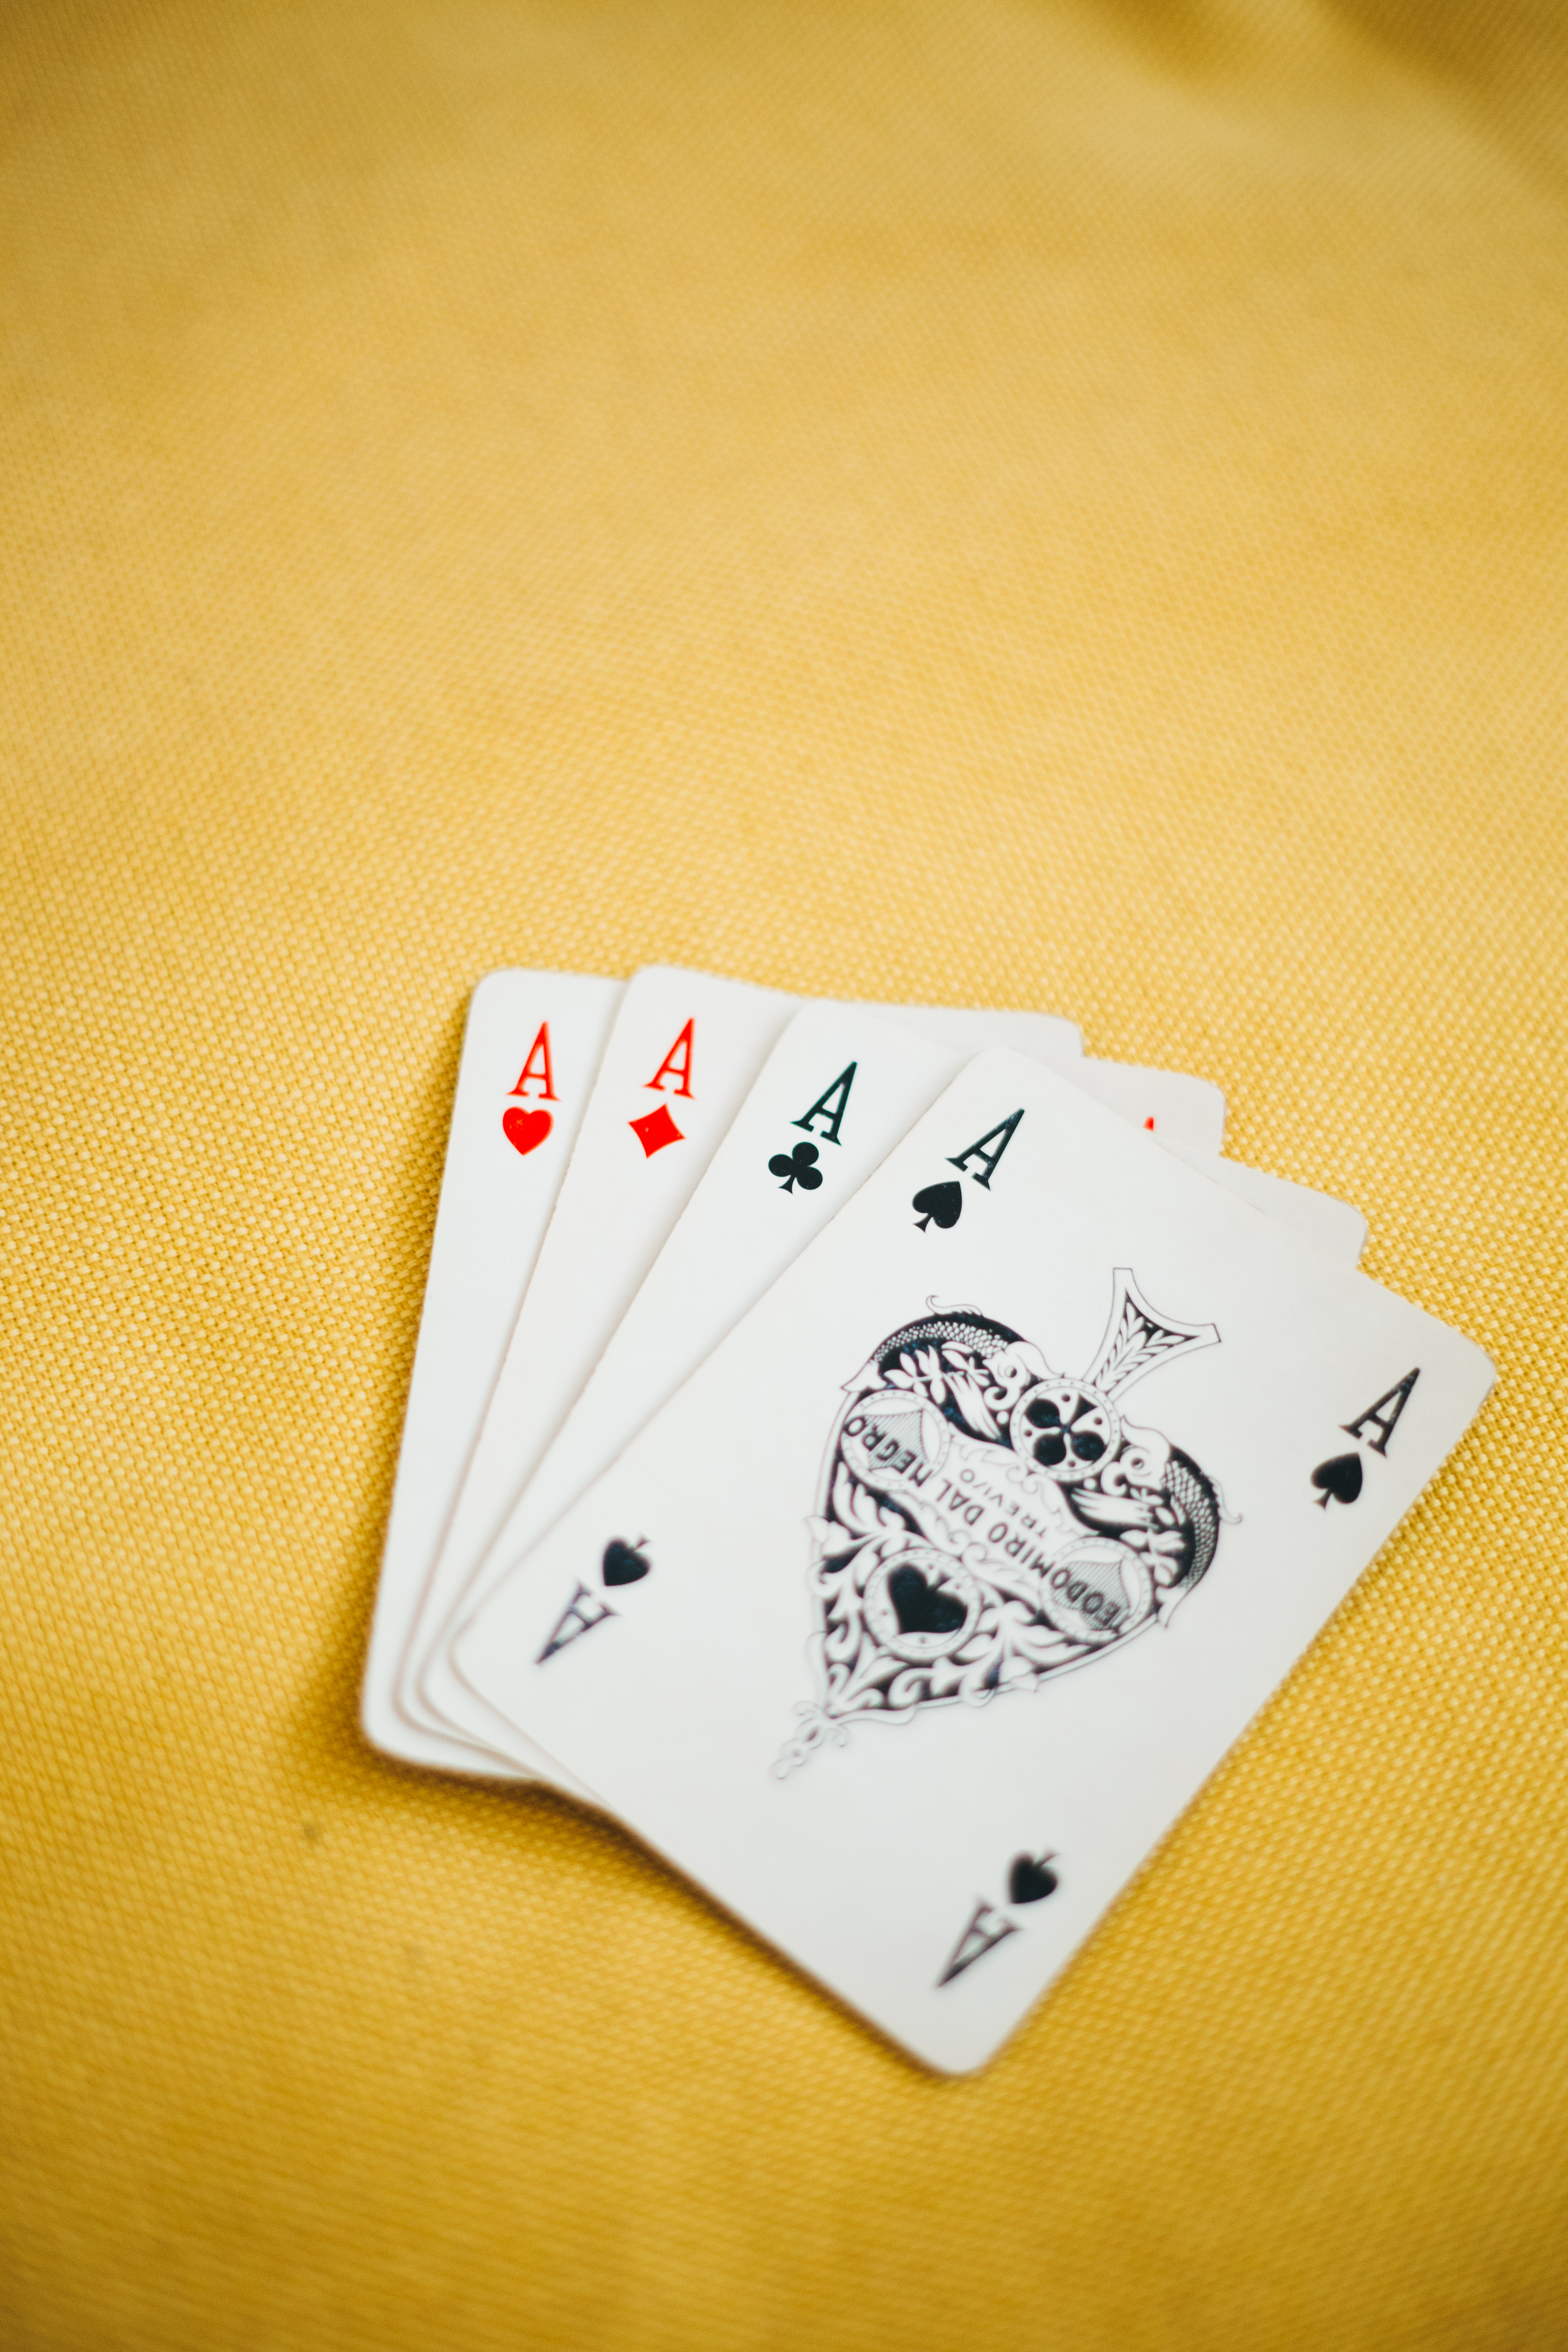 Ace Playing Cards on Brown Textile